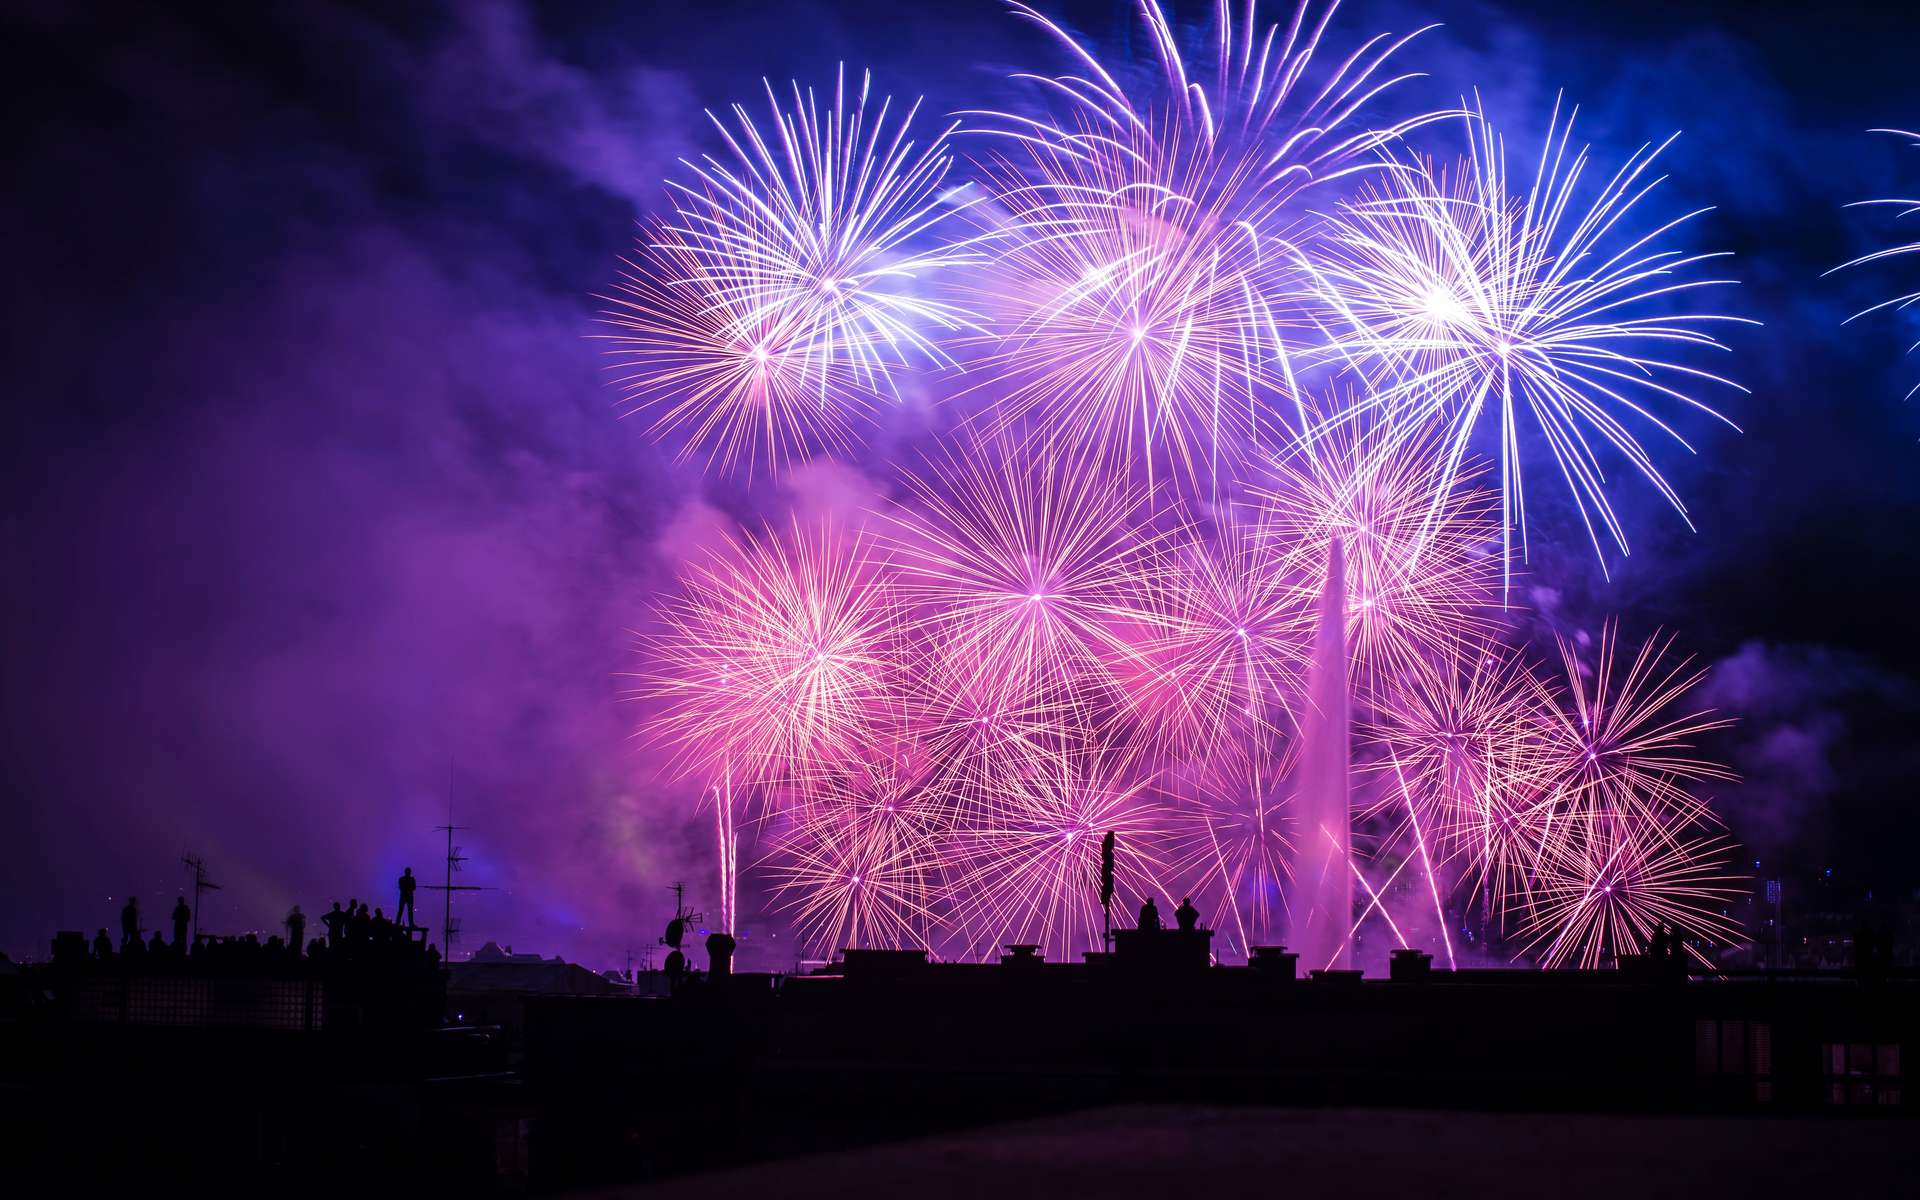 Les feux d'artifice engendrent une multiplication par quatre ou cinq du niveau de particules fines. © Ben O'Bro, Unsplash